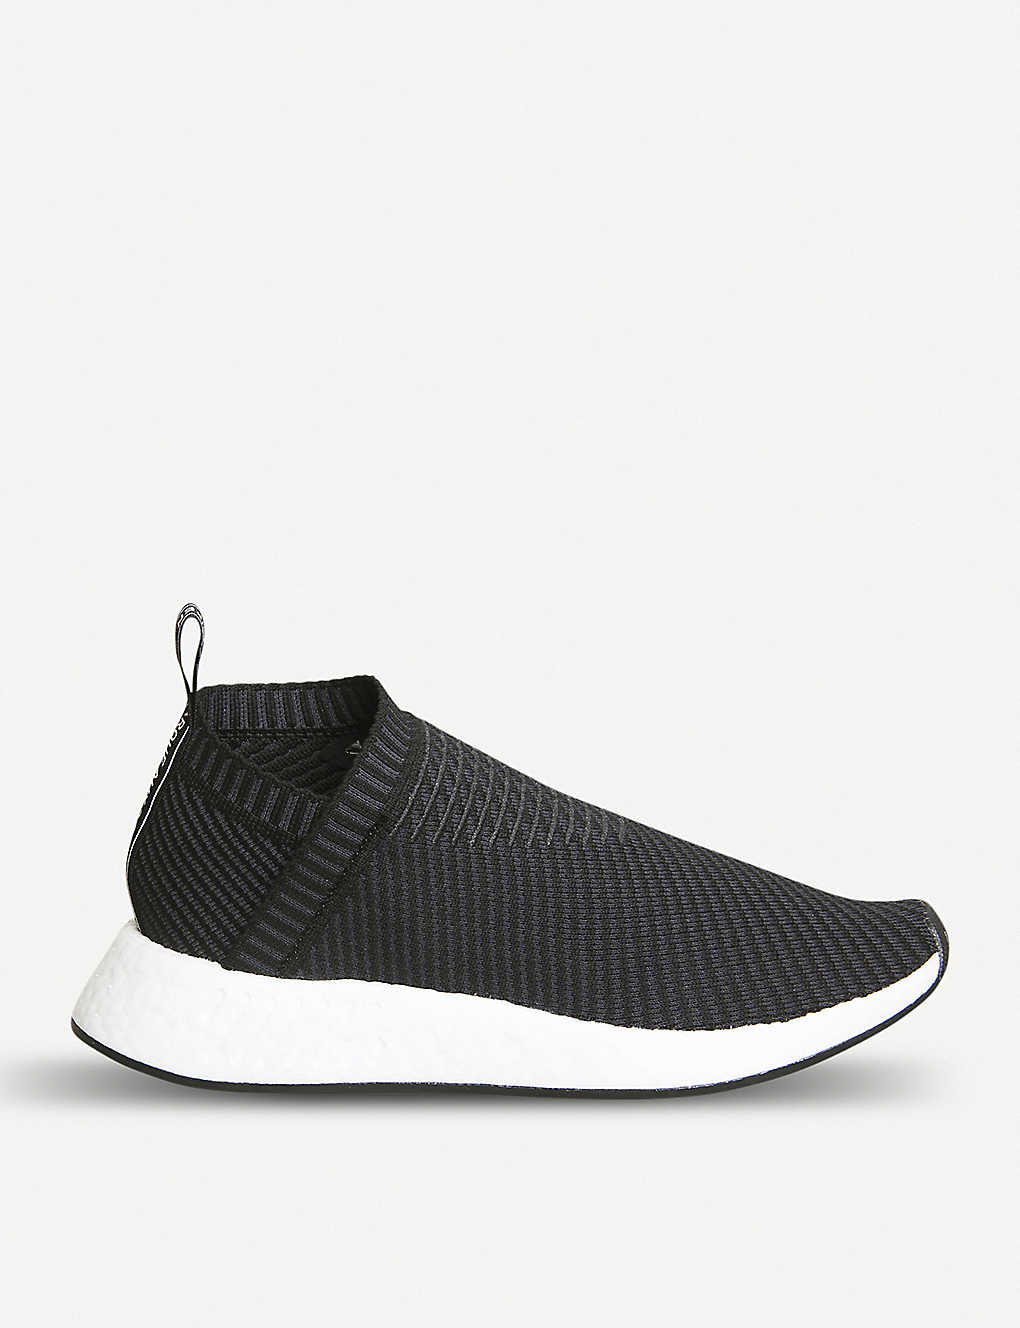 a07092d22 ADIDAS - Nmd City Sock 2 Primeknit sneakers